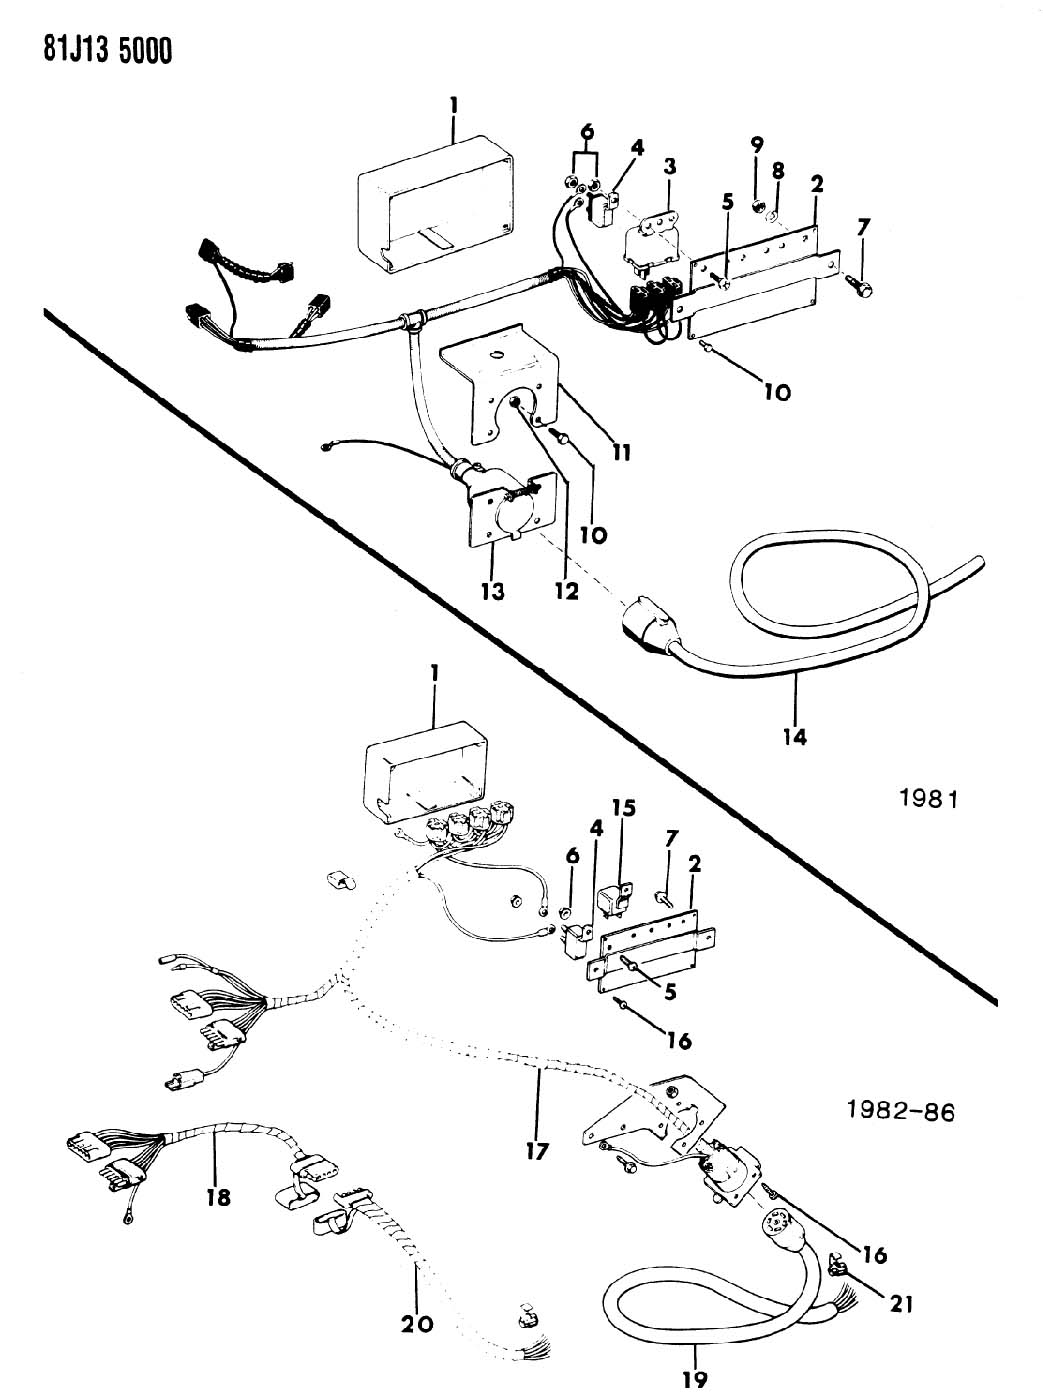 equalizer hitch installation instructions